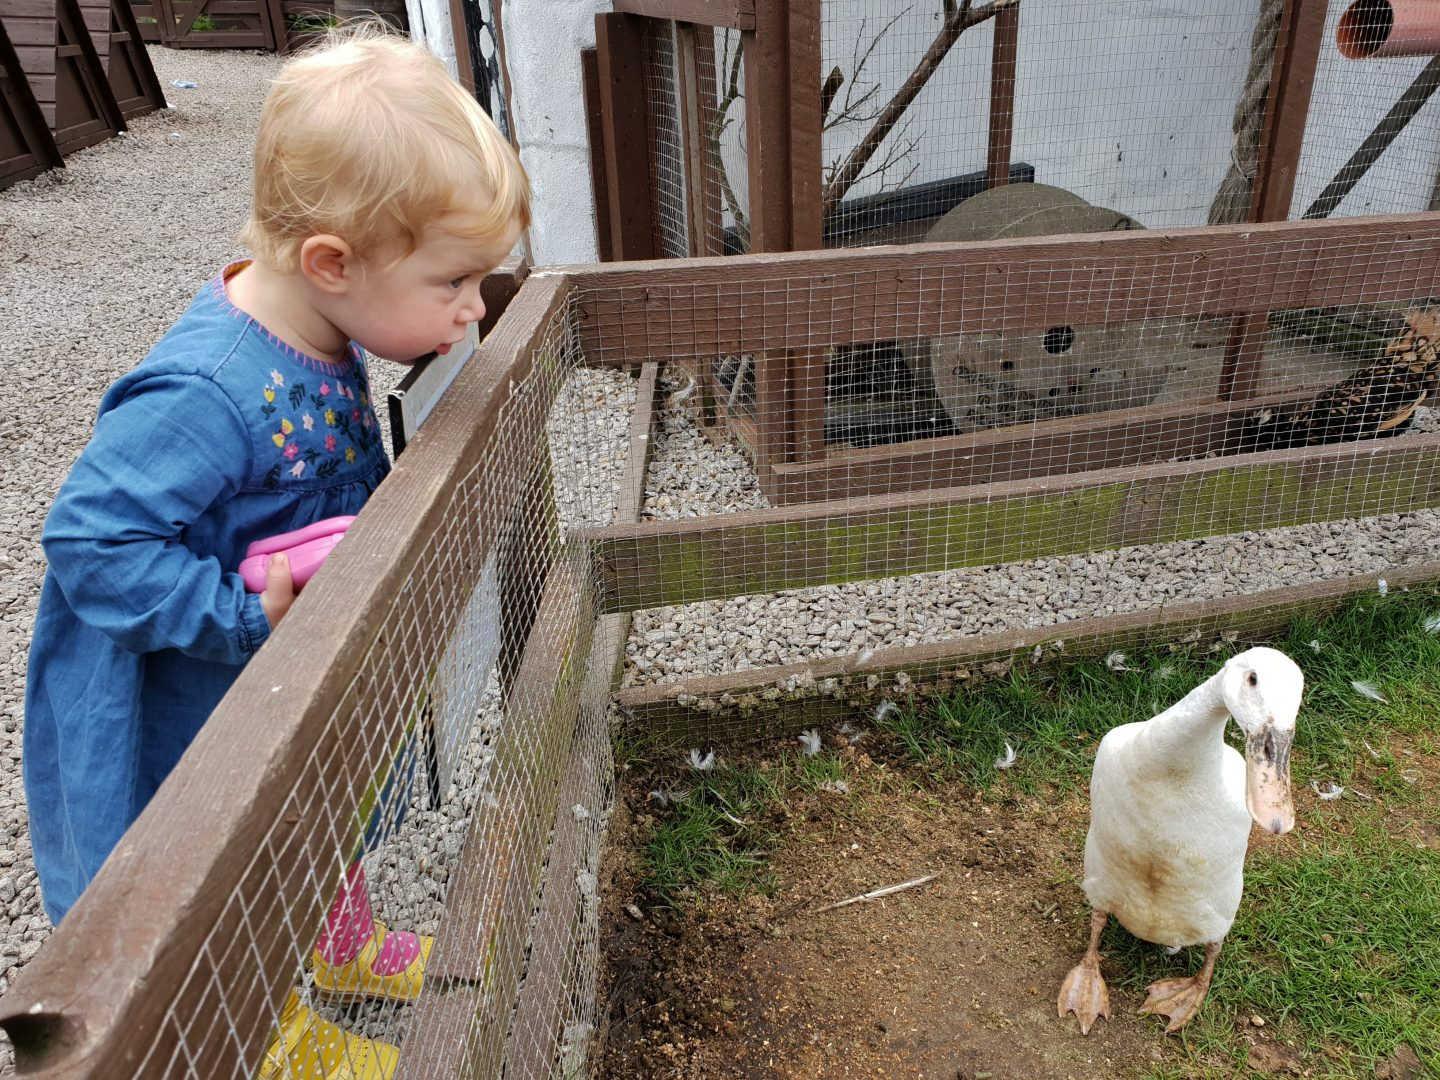 Toddler looking at ducks, Greeb Farm, Land's End, Cornwall